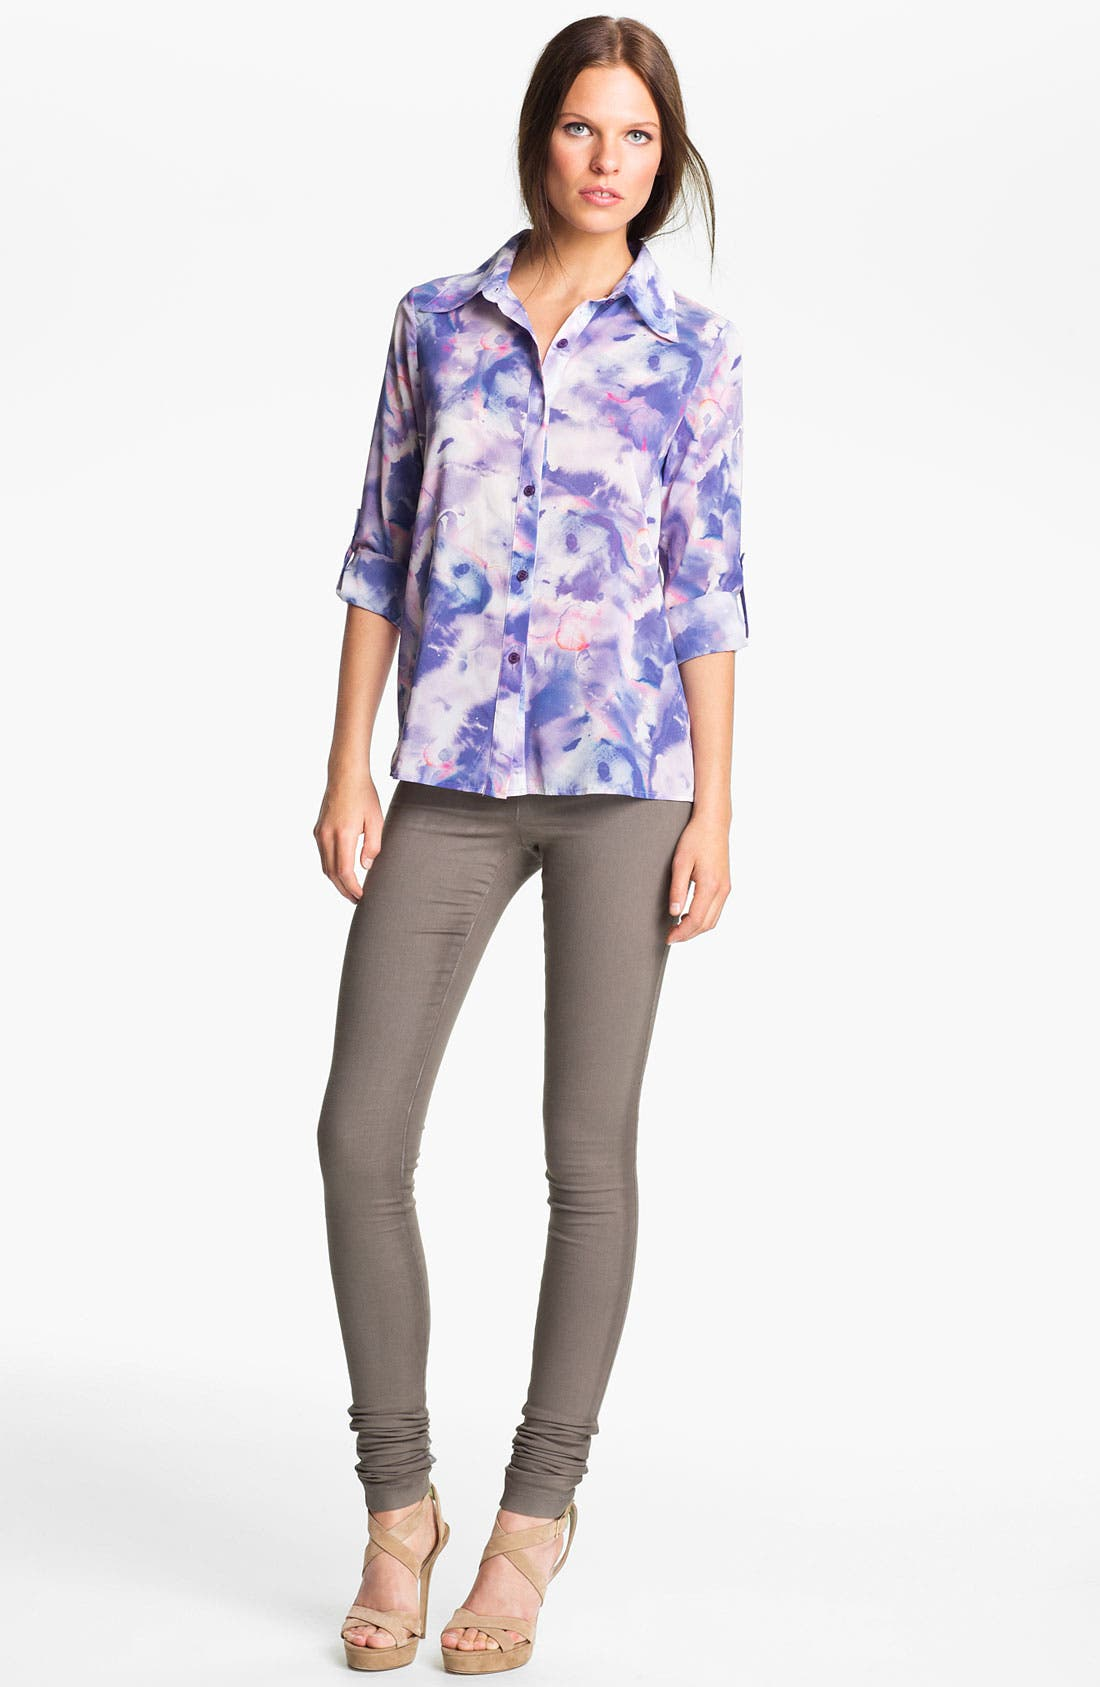 Alternate Image 1 Selected - Alice + Olivia 'Juliette' Tie Dye Stretch Silk Shirt